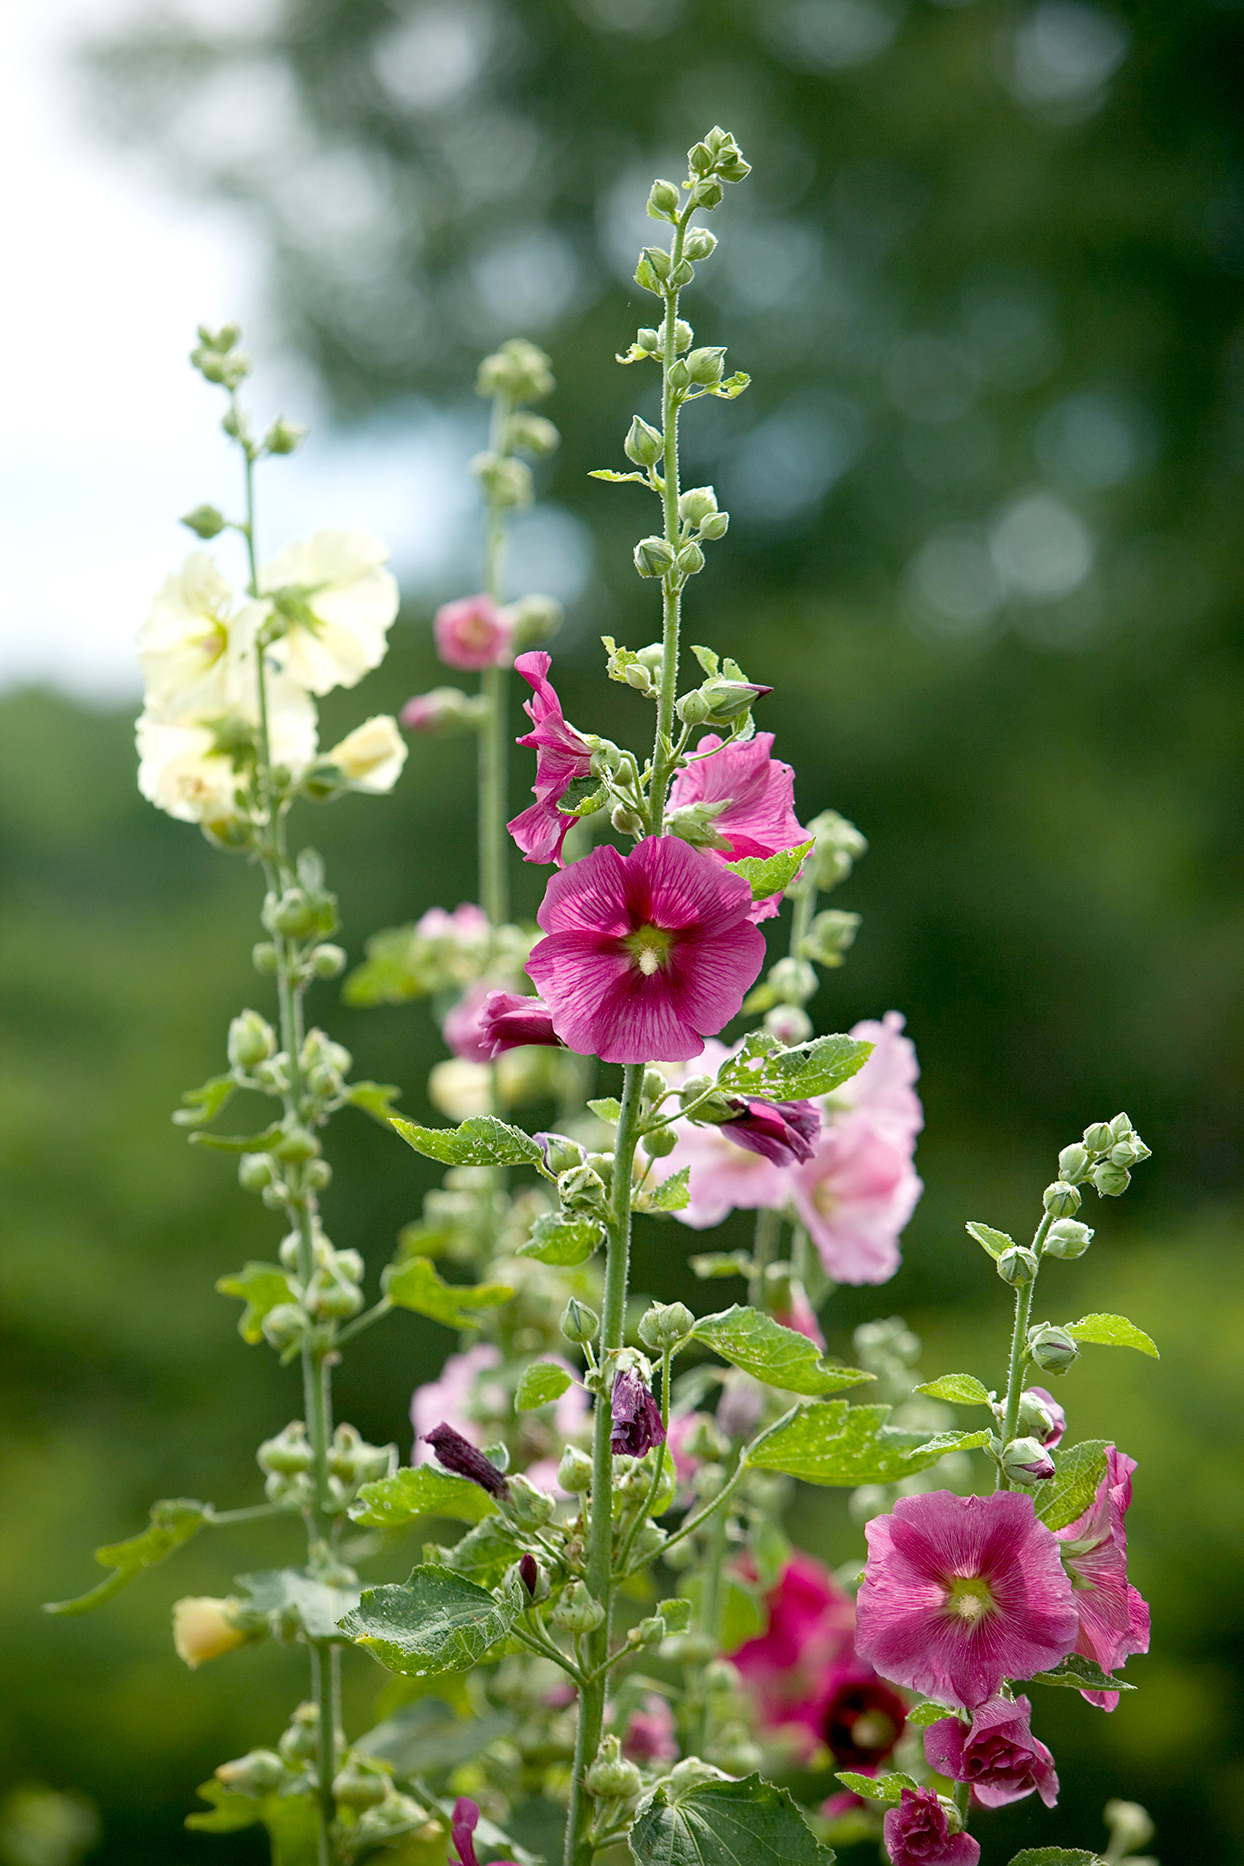 Close up of purple and white Hollyhock